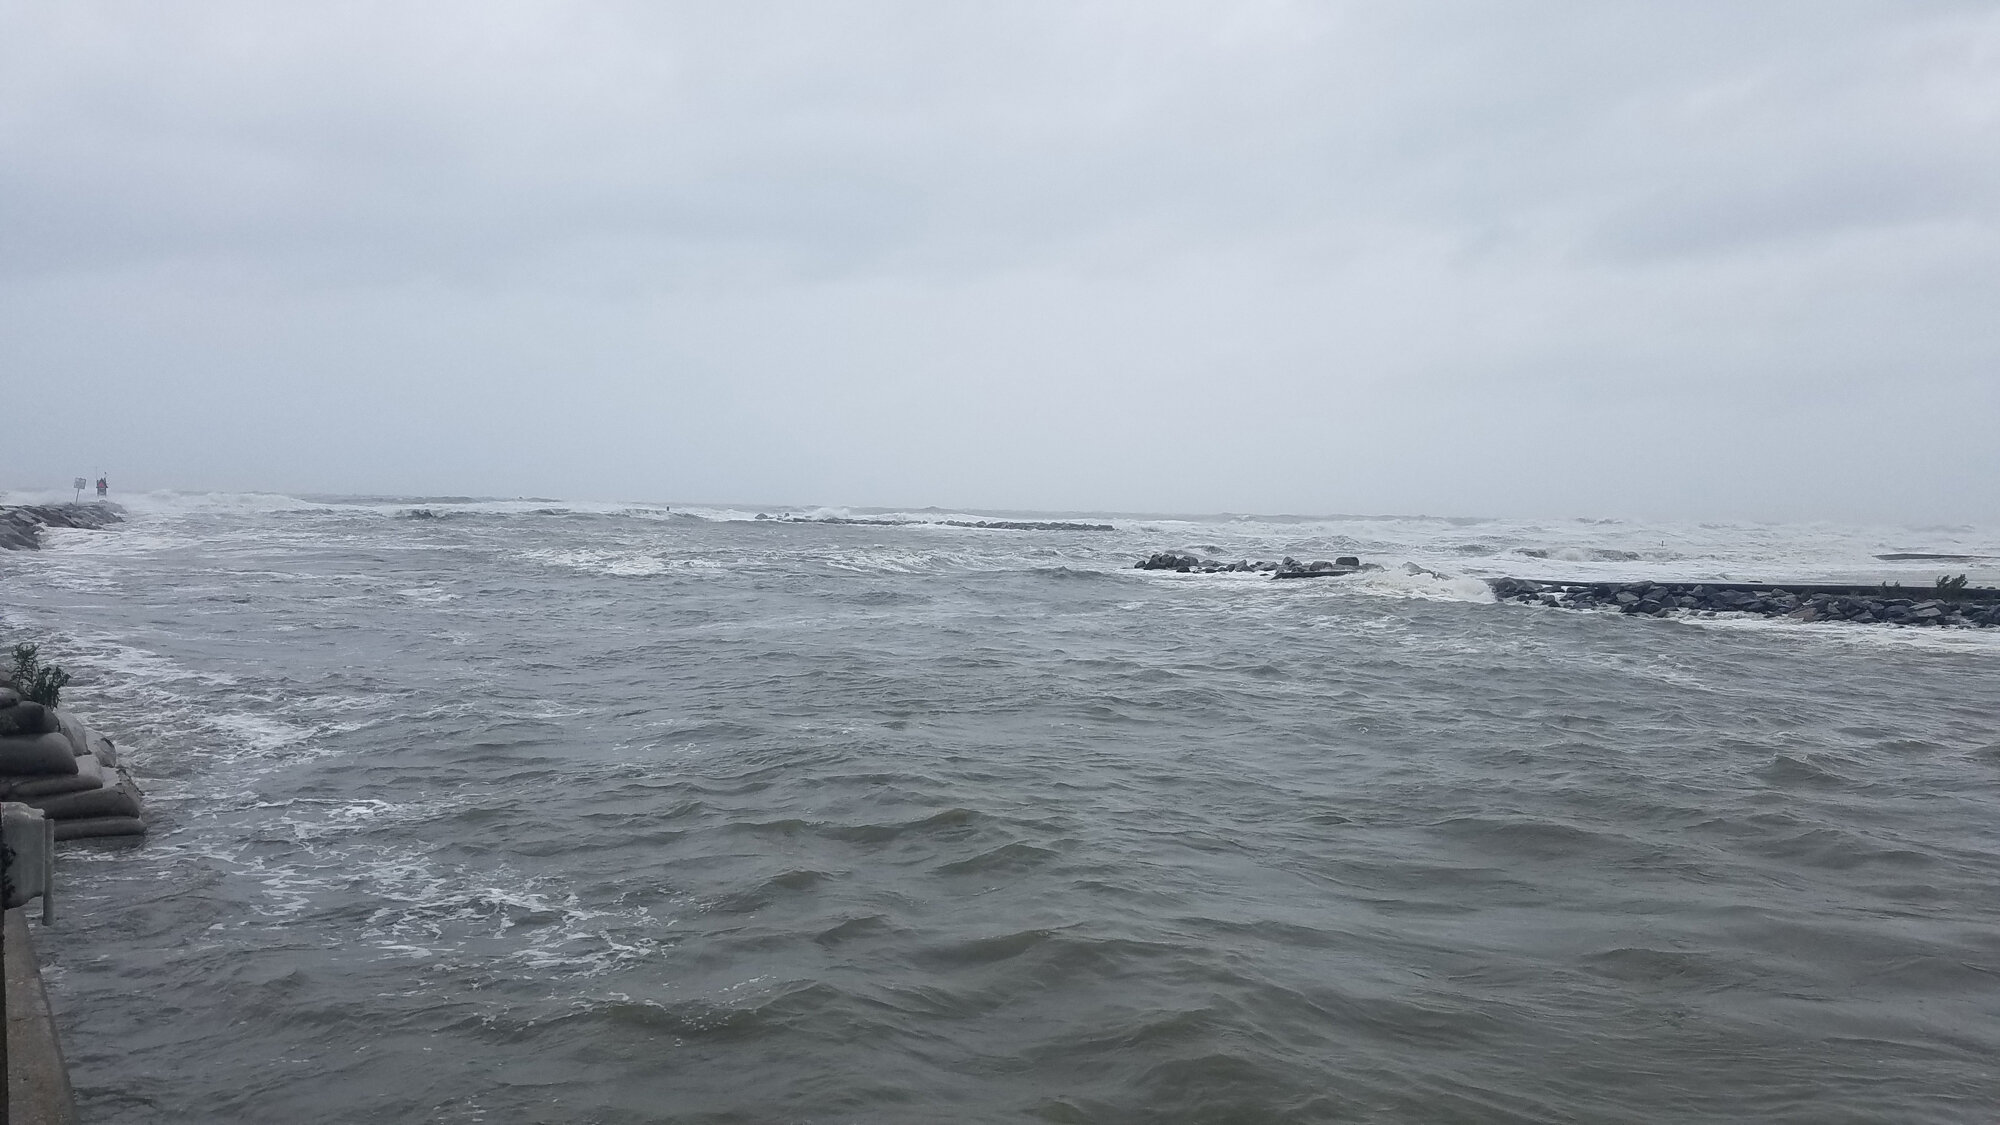 Rudee Inlet on 6 Sep, during the height of Hurricane Dorian's passage, with the offshore jetty barely visible at high tide.